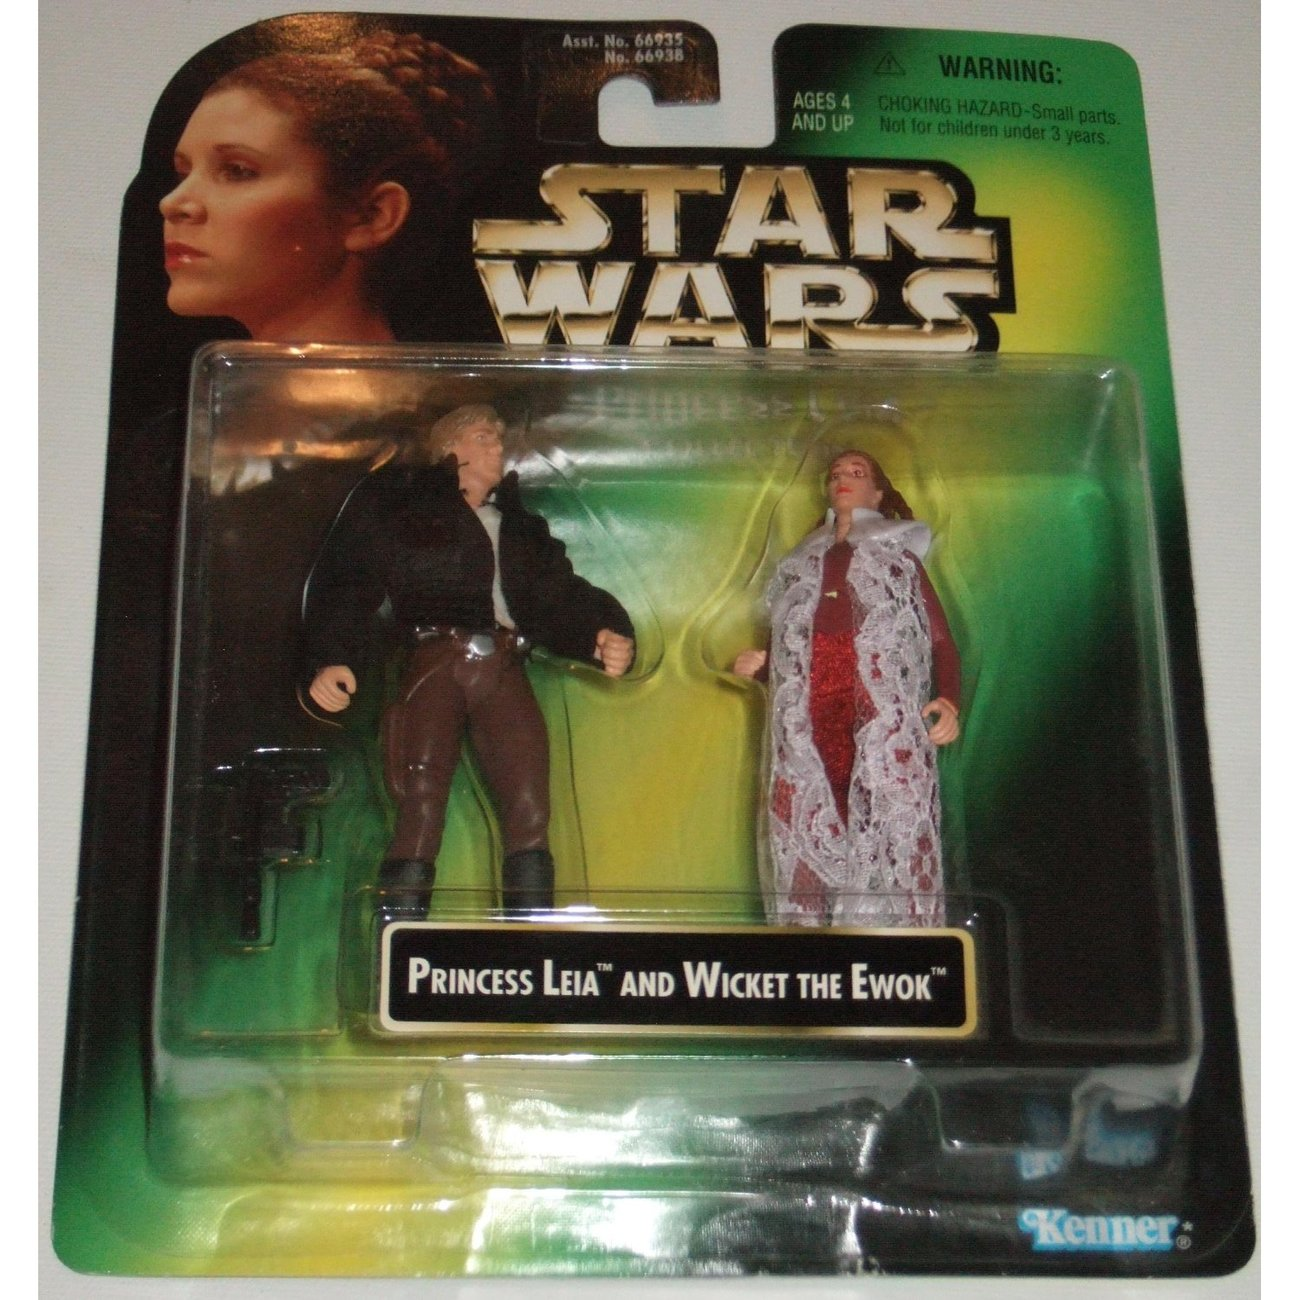 Star Wars Princess Leia & Han Solo Set from the Princess Leia Collection mislabe